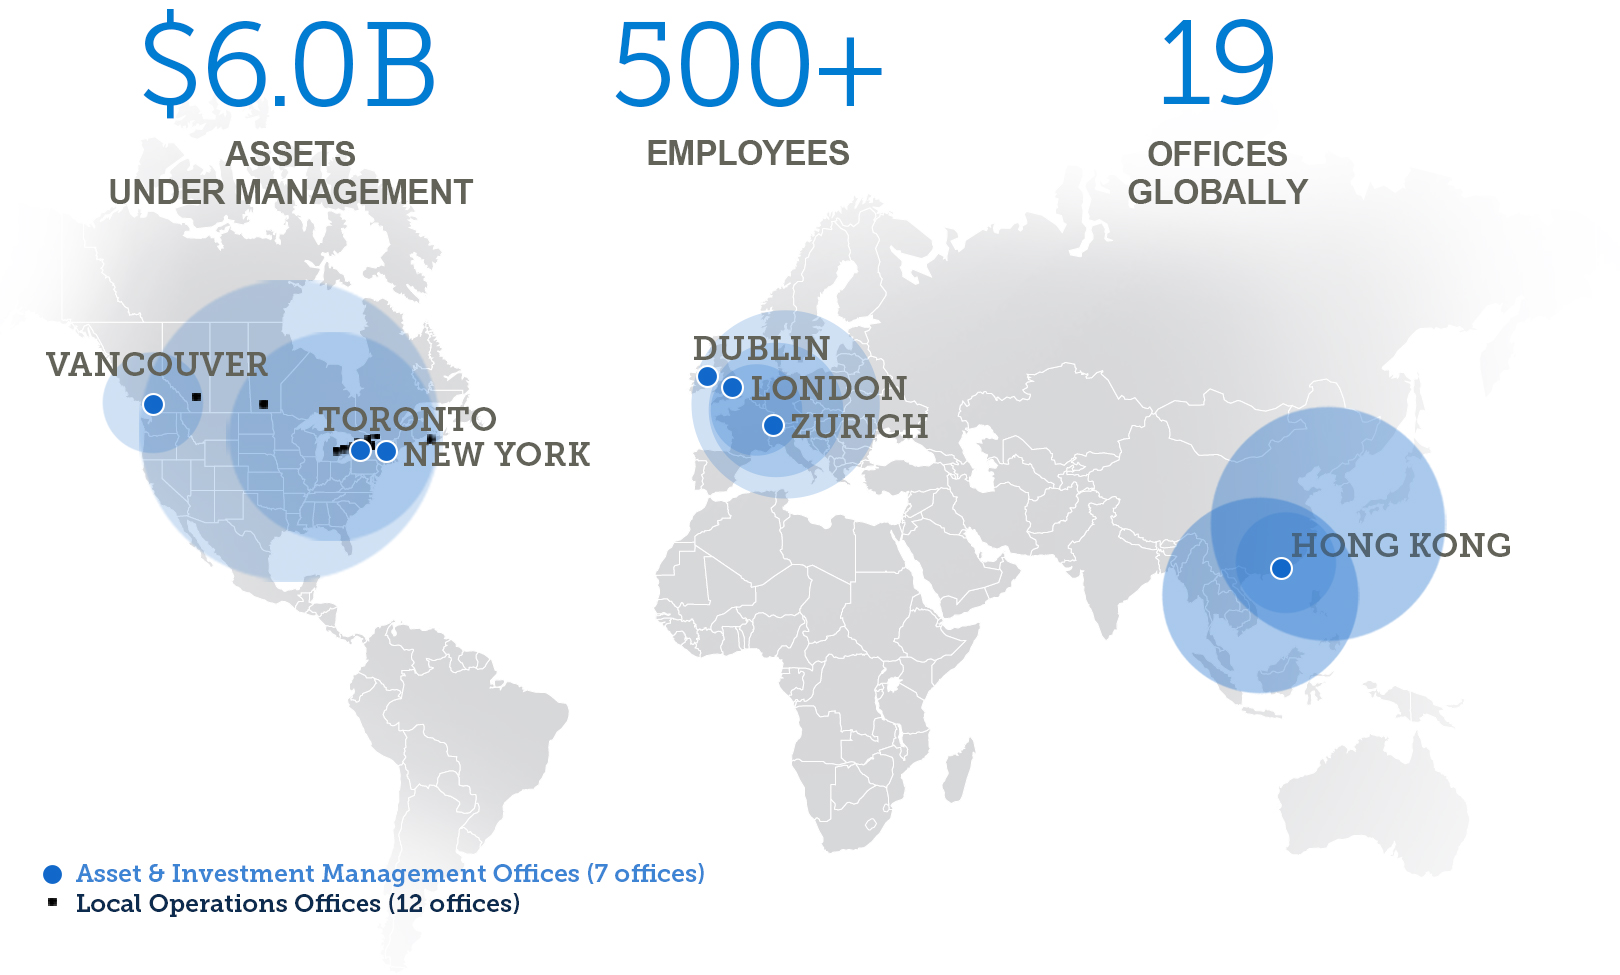 $7B Assets Under Management, 500+ Employees, 19 Offices Globally, Asset & Investment Management Offices (7 offices) including Vancouver, Toronto, New York, Dublin, London, Zurich, Hong Kong. Local Operations Office (12 offices)